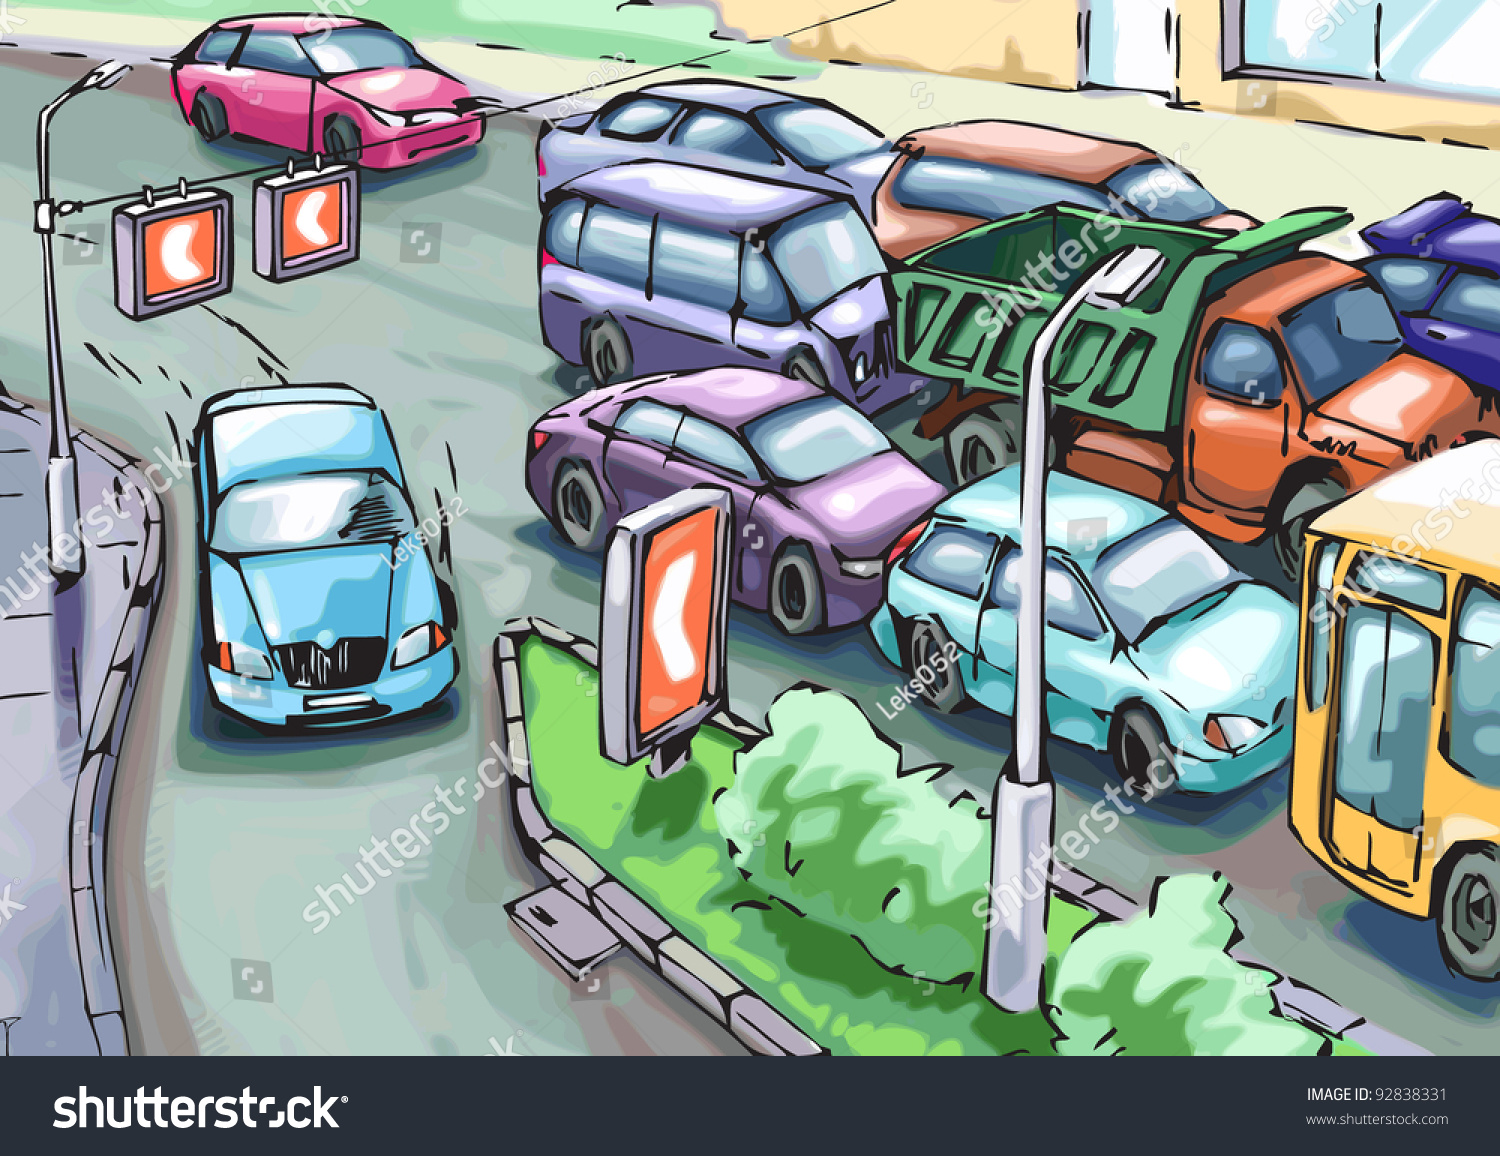 essay on when i was stuck in traffic jam English conversation - traffic & commuting  traffic expressions traffic jam - a long line of  have you ever been in a traffic jam have you ever been stuck in .